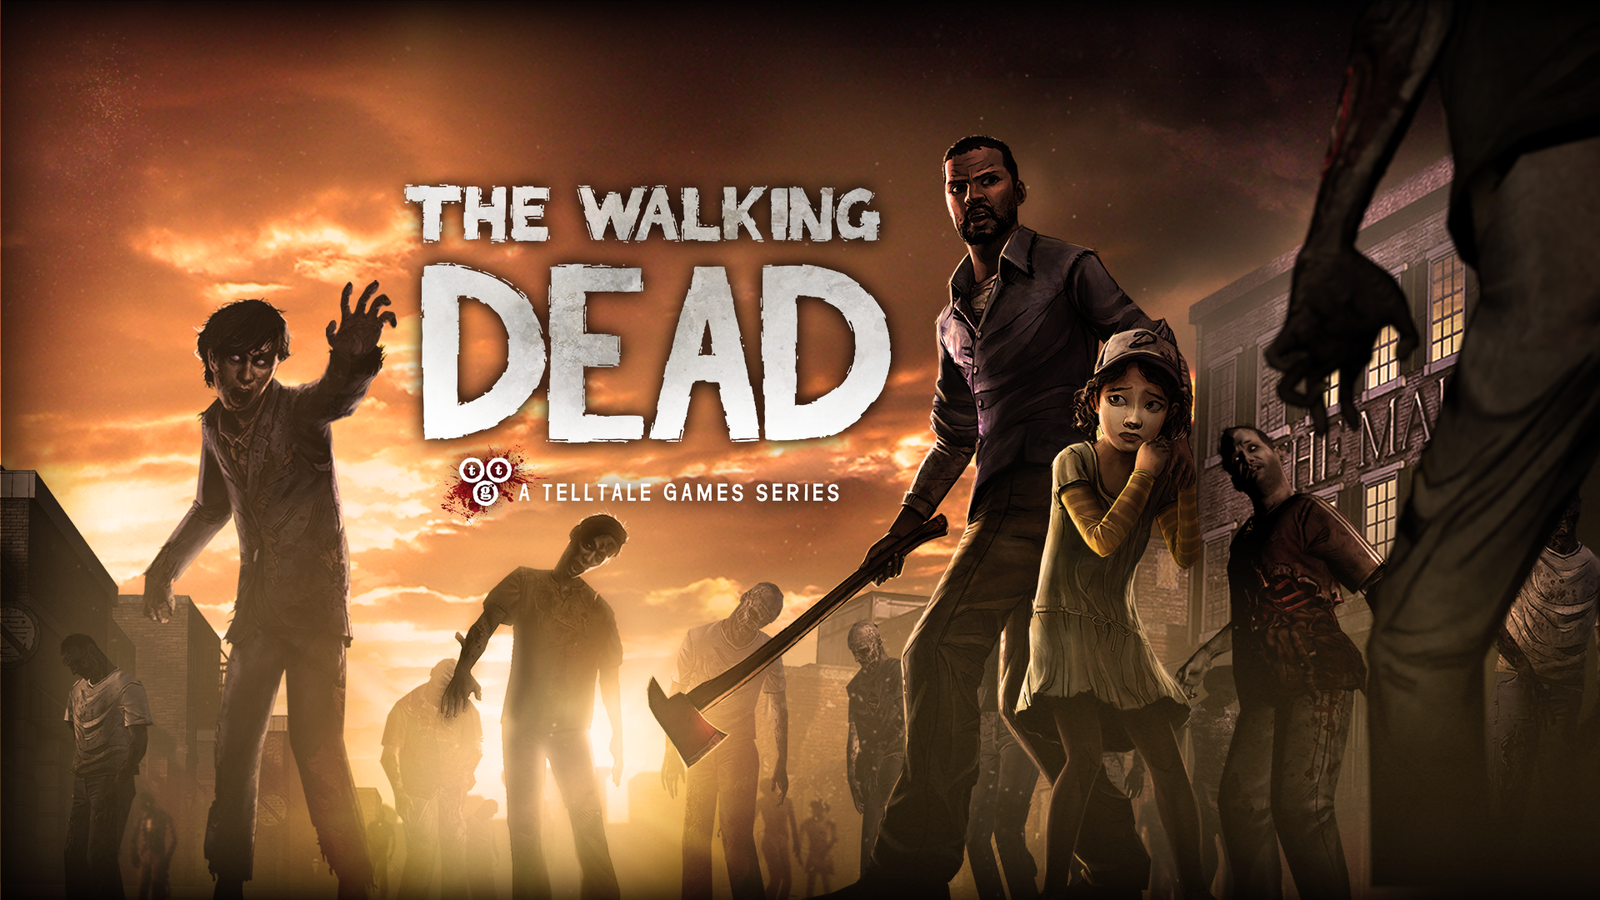 Walking Dead Series Coming to Nintendo Switch